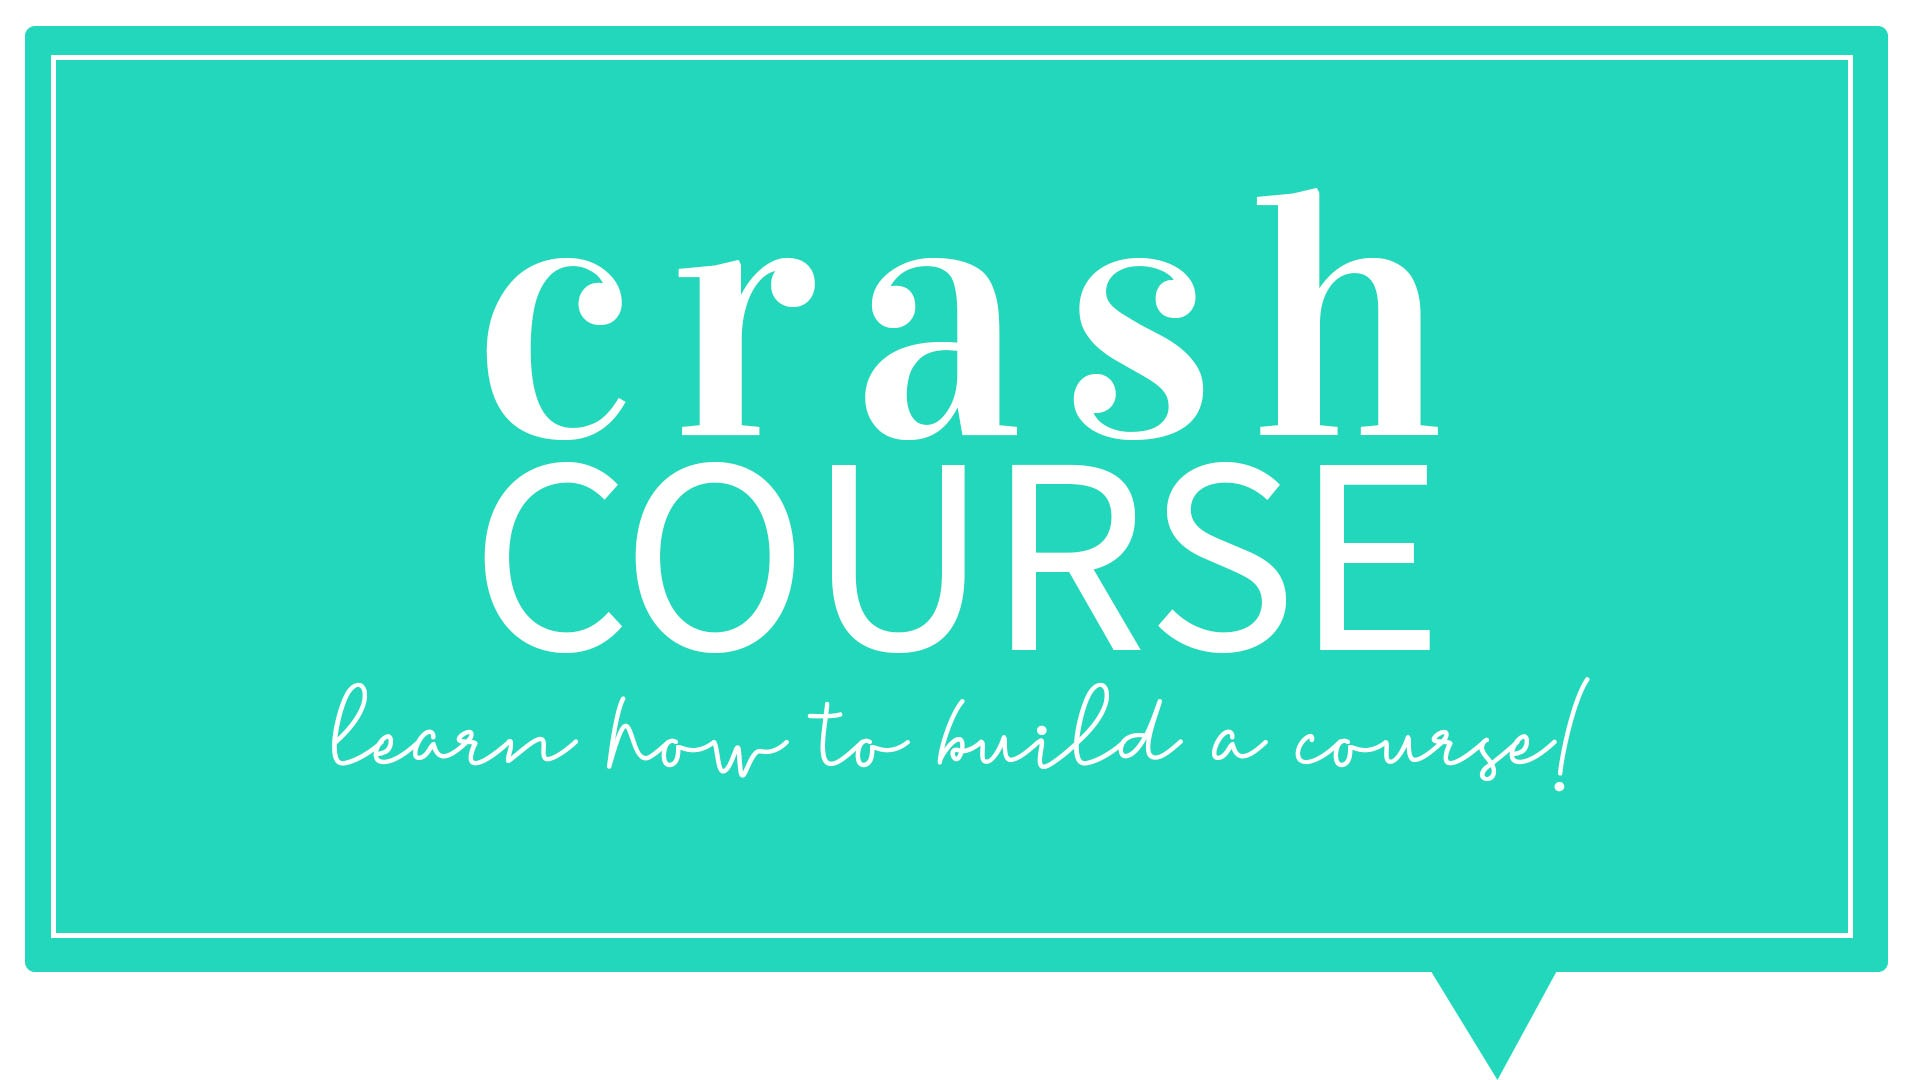 Learn how to create a course